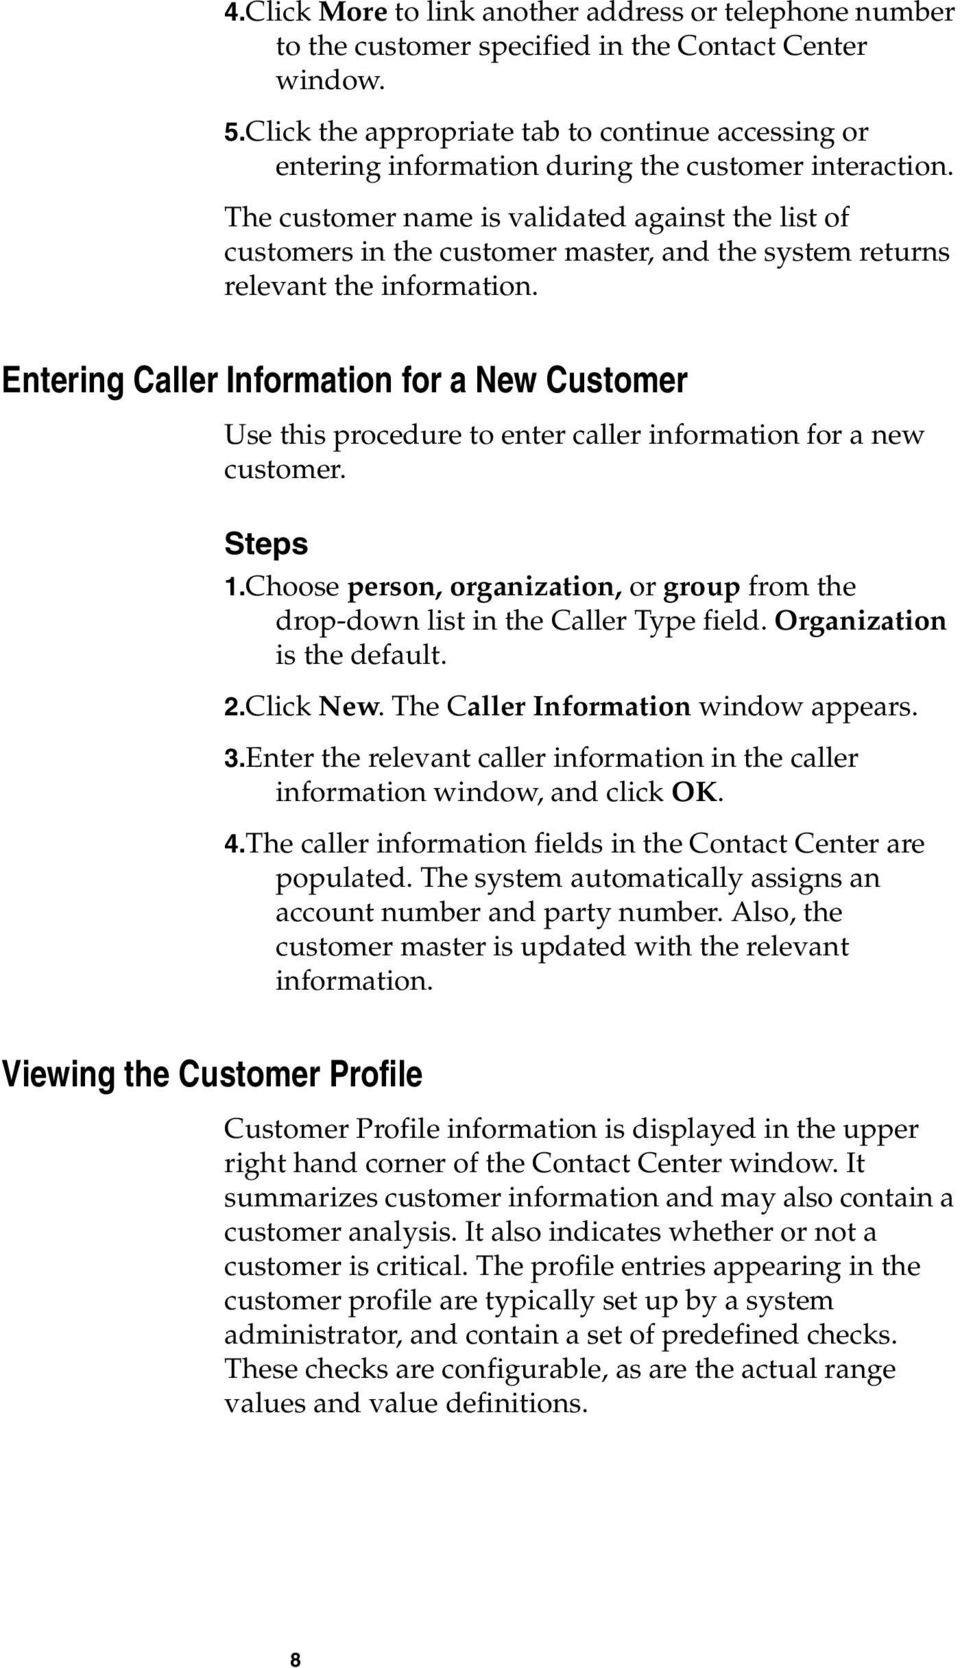 The customer name is validated against the list of customers in the customer master, and the system returns relevant the information.